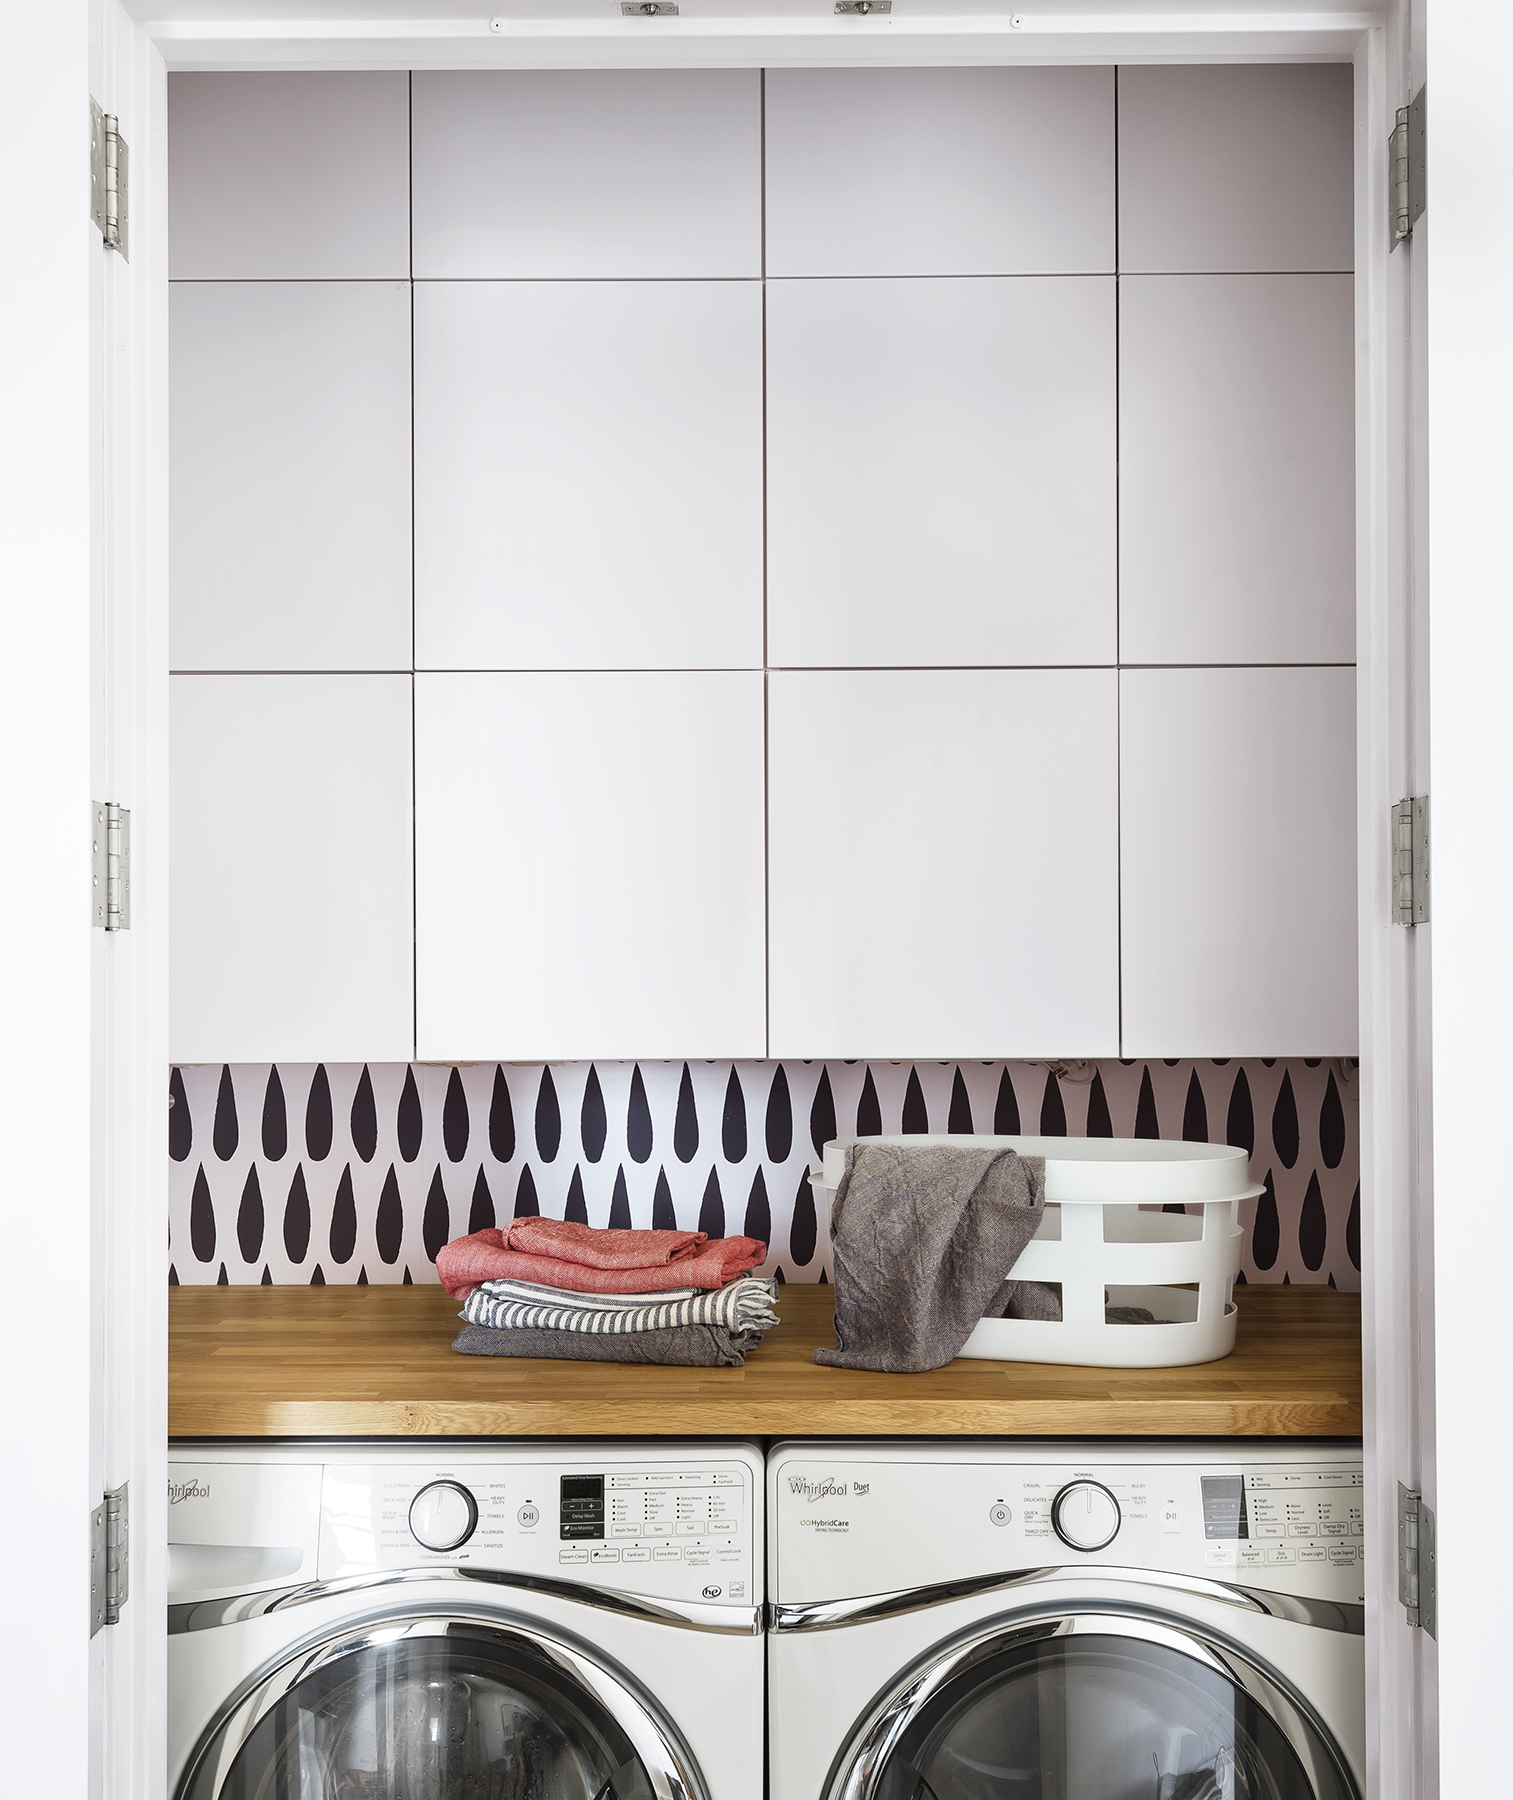 Laundry closet with cabinets